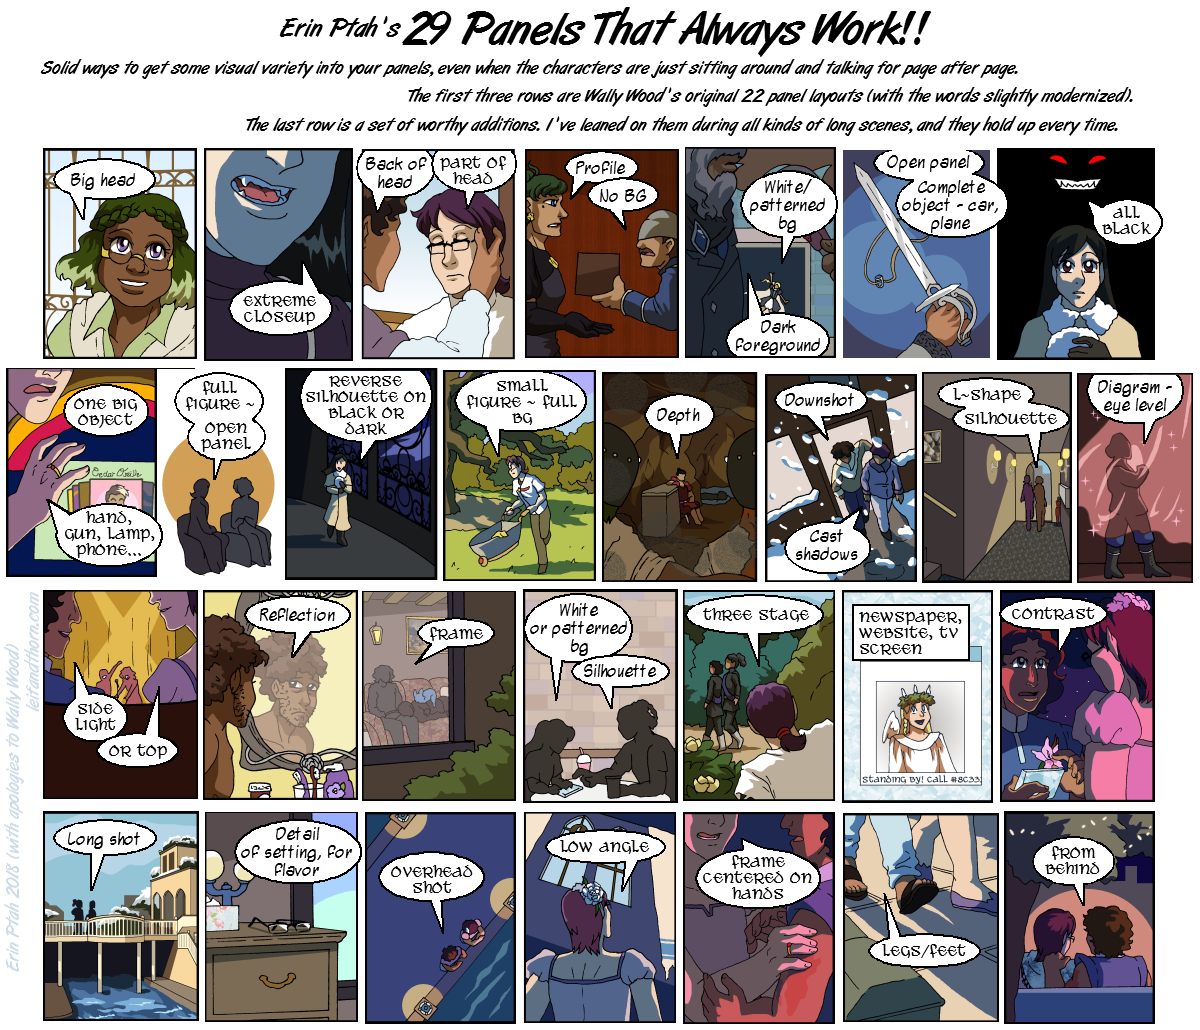 29 Panels That Always Work by ErinPtah